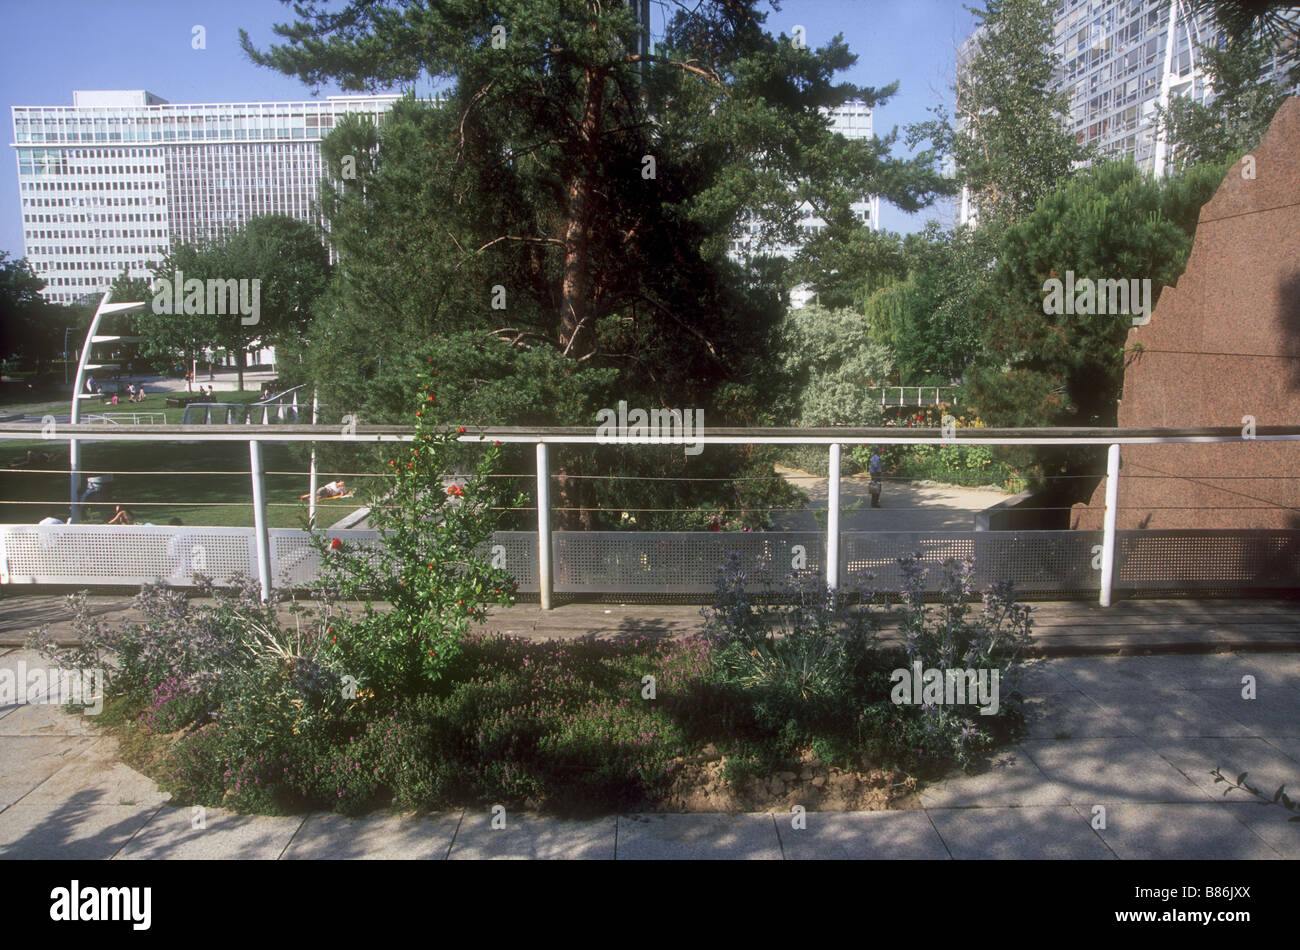 jardin atlantique in paris stock image - Jardin Atlantique